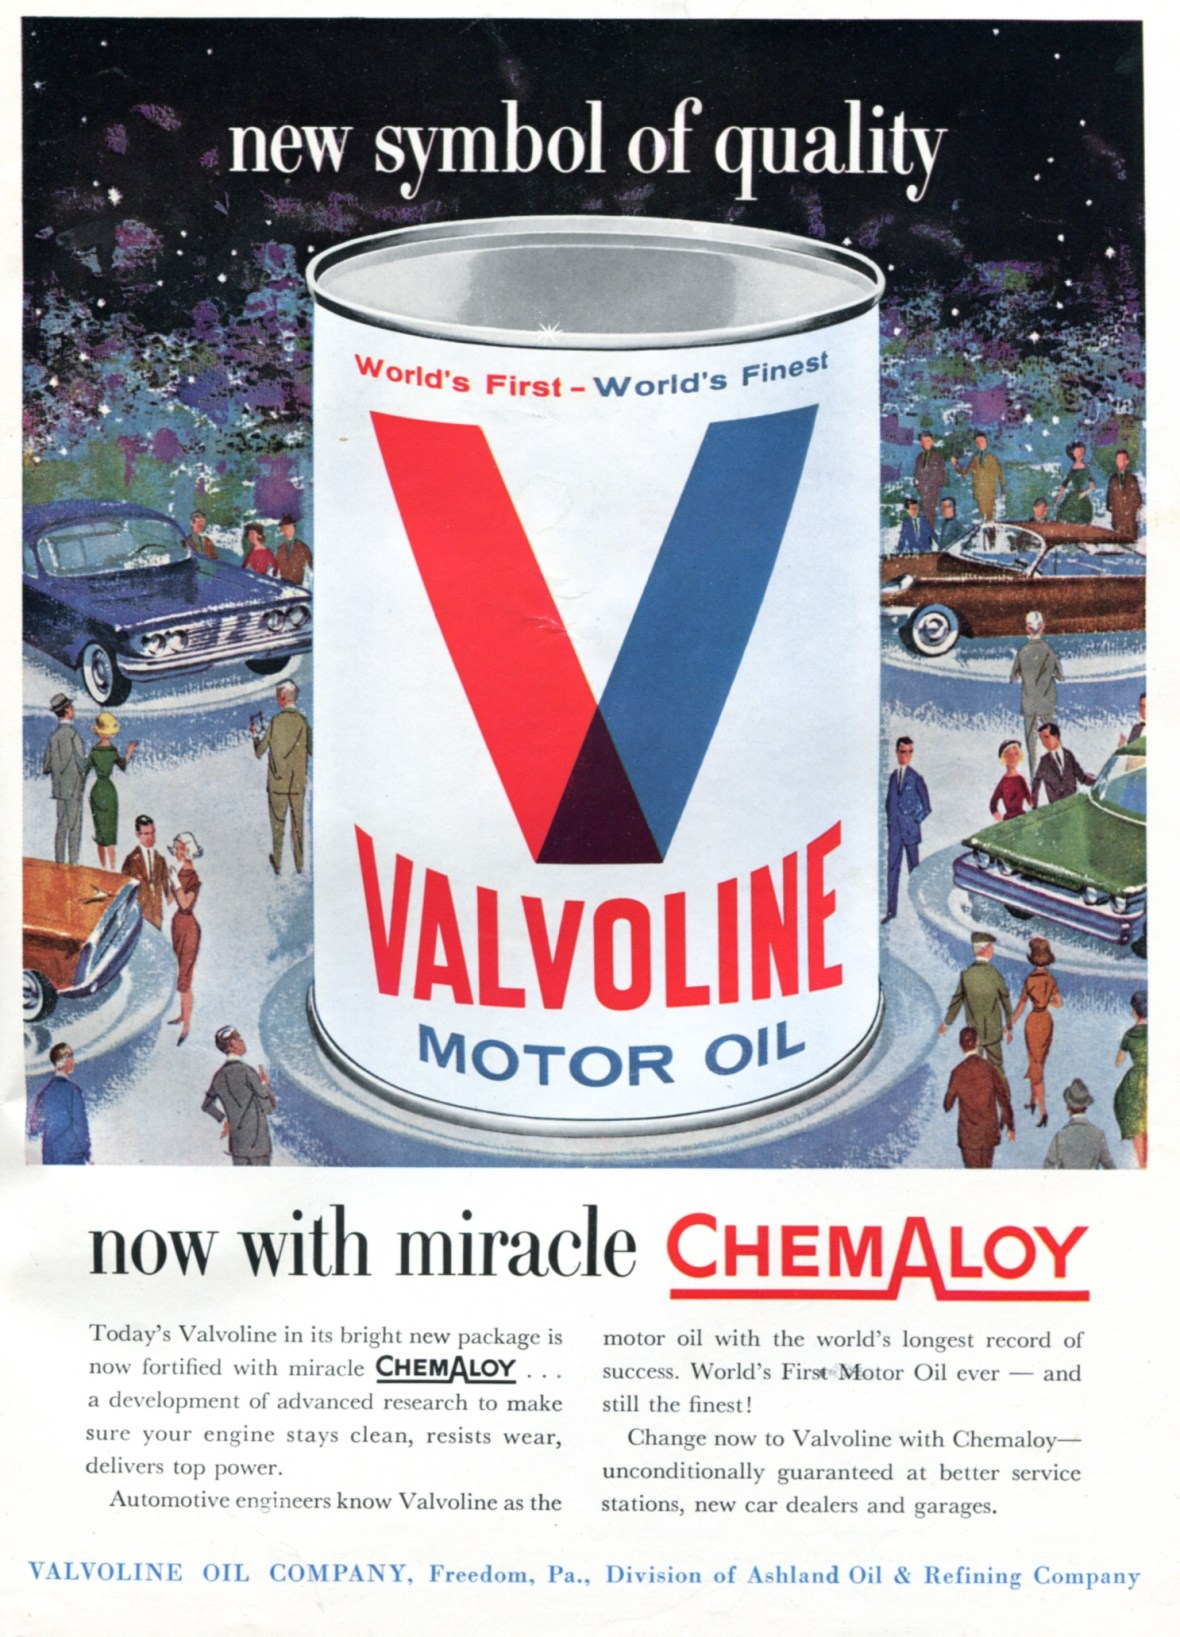 Valvoline - published in Sports Car Illustrated - November 1960